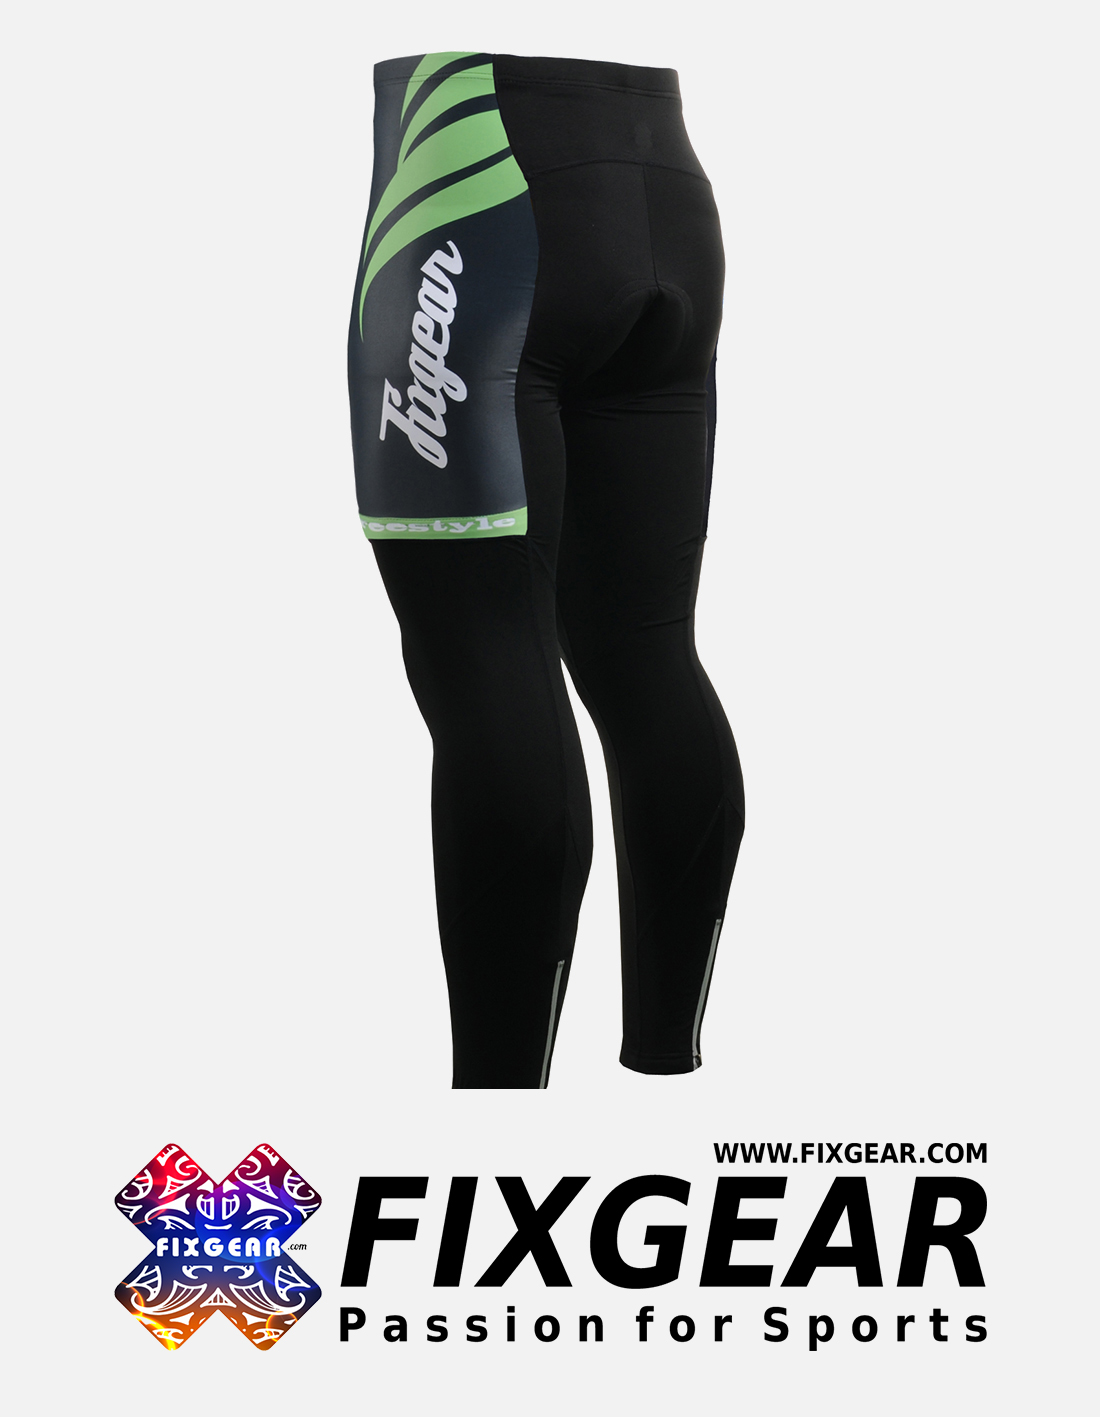 FIXGEAR LT-12K Men's Cycling Cycling Padded Pants